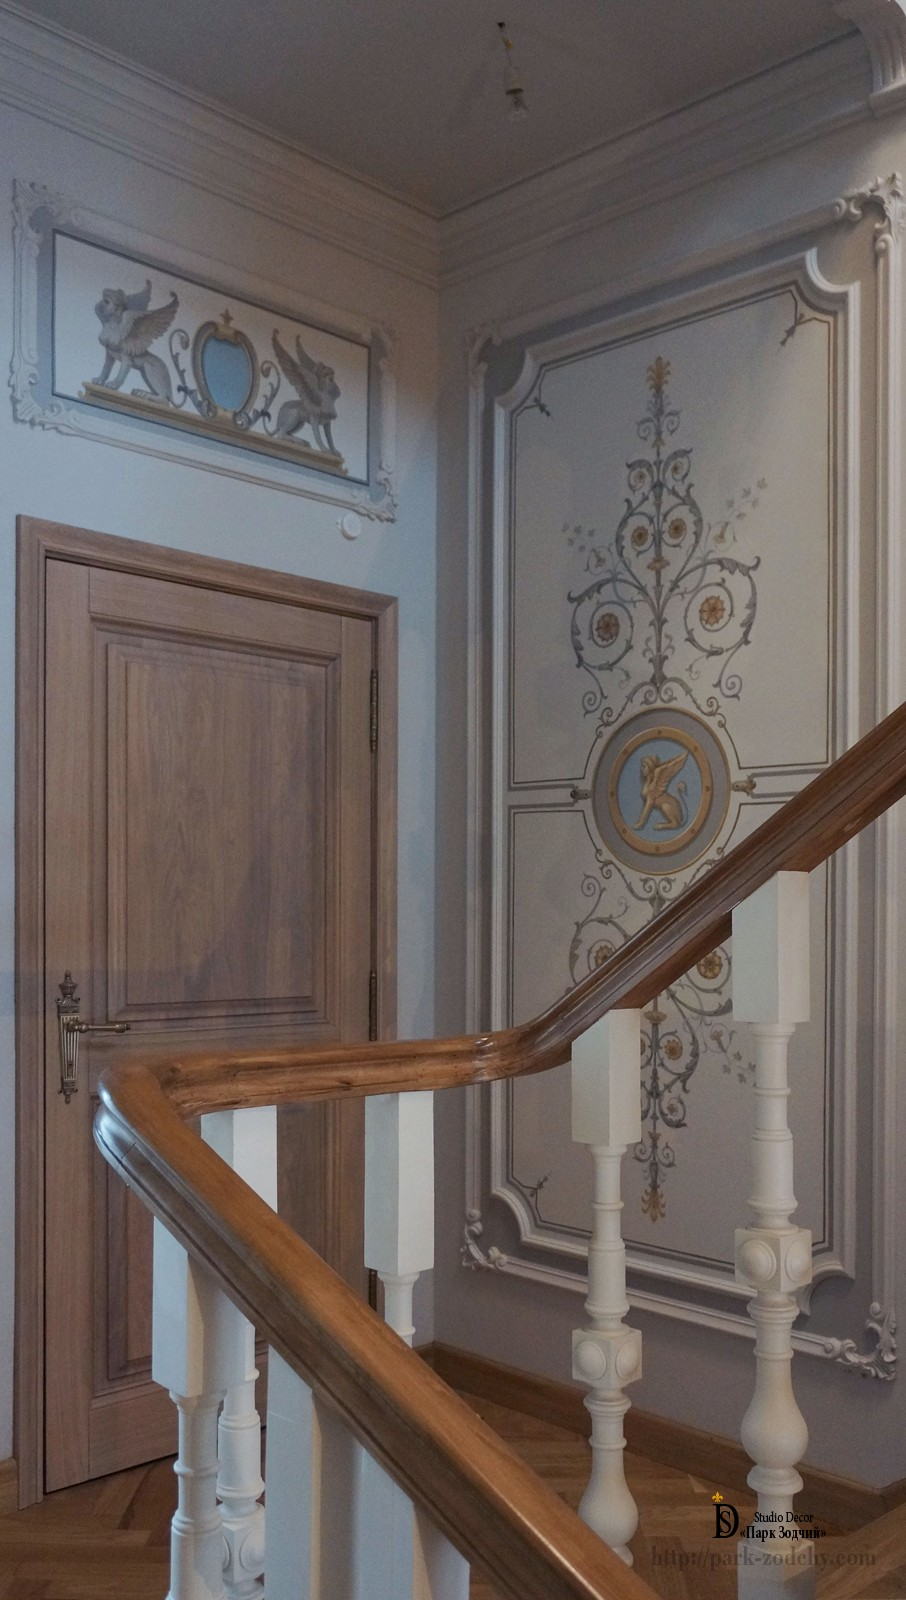 The main staircase is decorated with alfrey painting